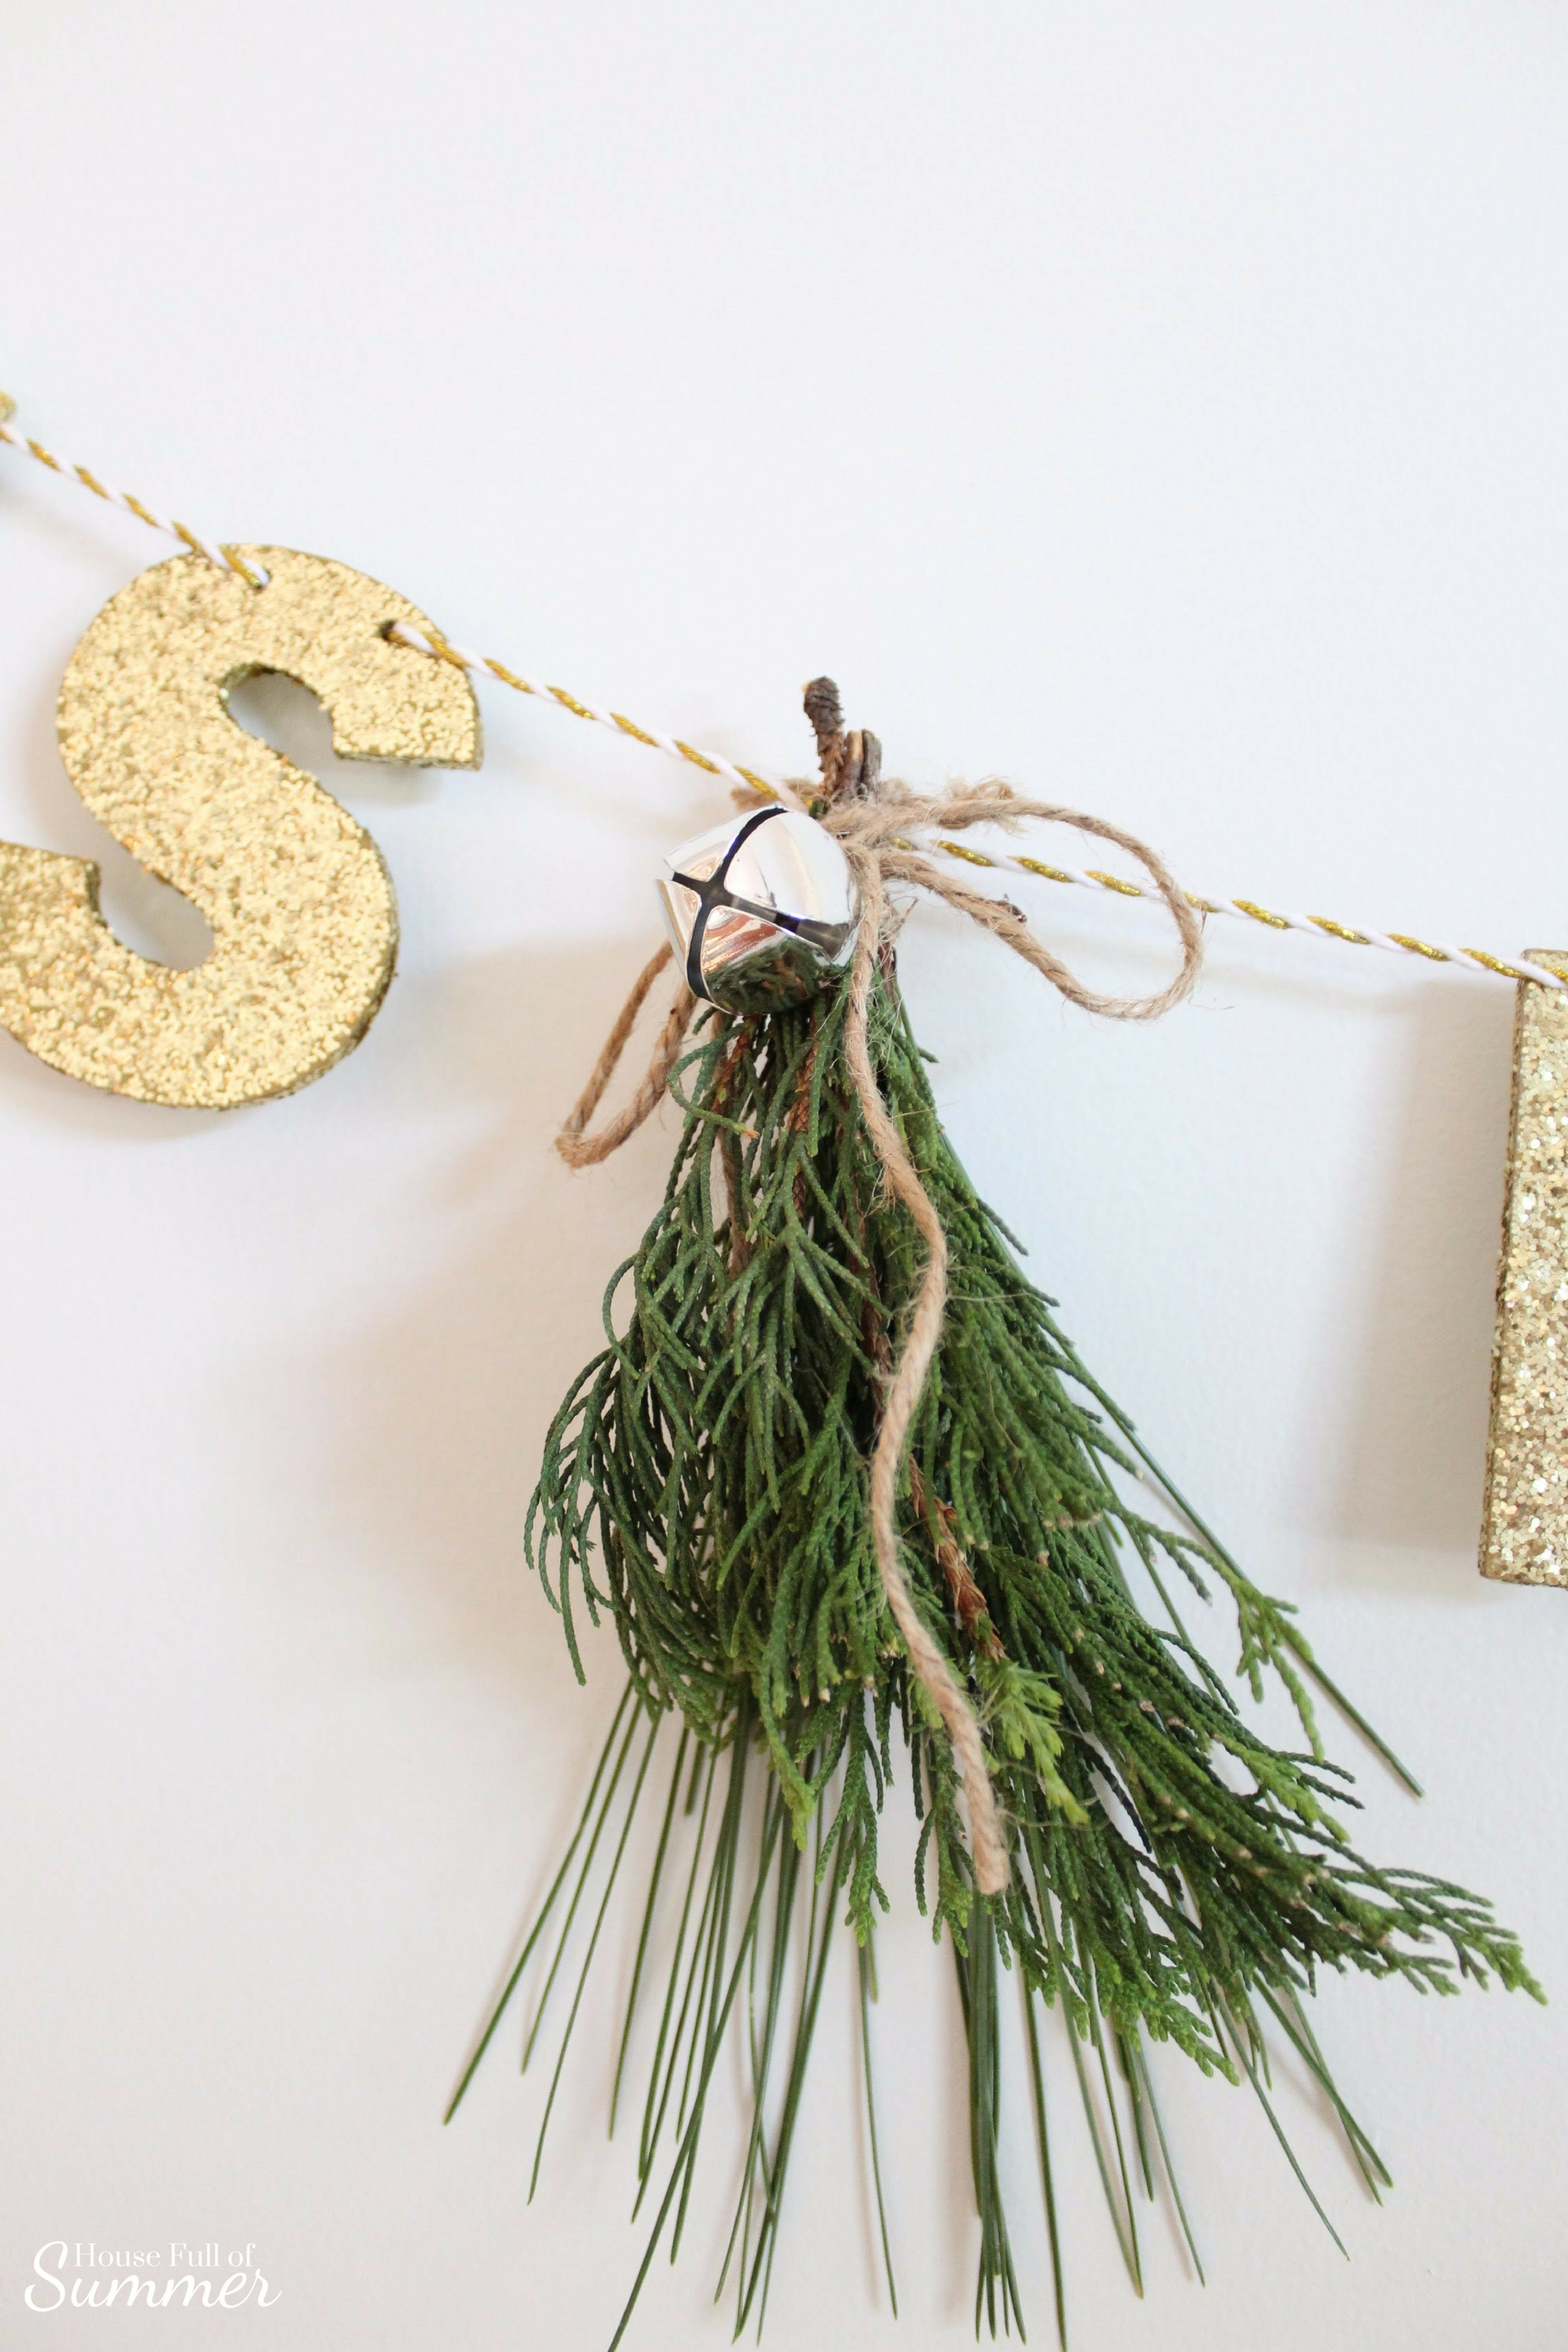 How To Make Fresh Pine Swags | House Full of Summer blog - diy christmas ideas, simple christmas decor, fresh greenery in christmas decor, holiday decor, coastal home christmas decor, classy decor, beachy christmas ideas, home interior, chair swag, pine swag, misteltoe, garland